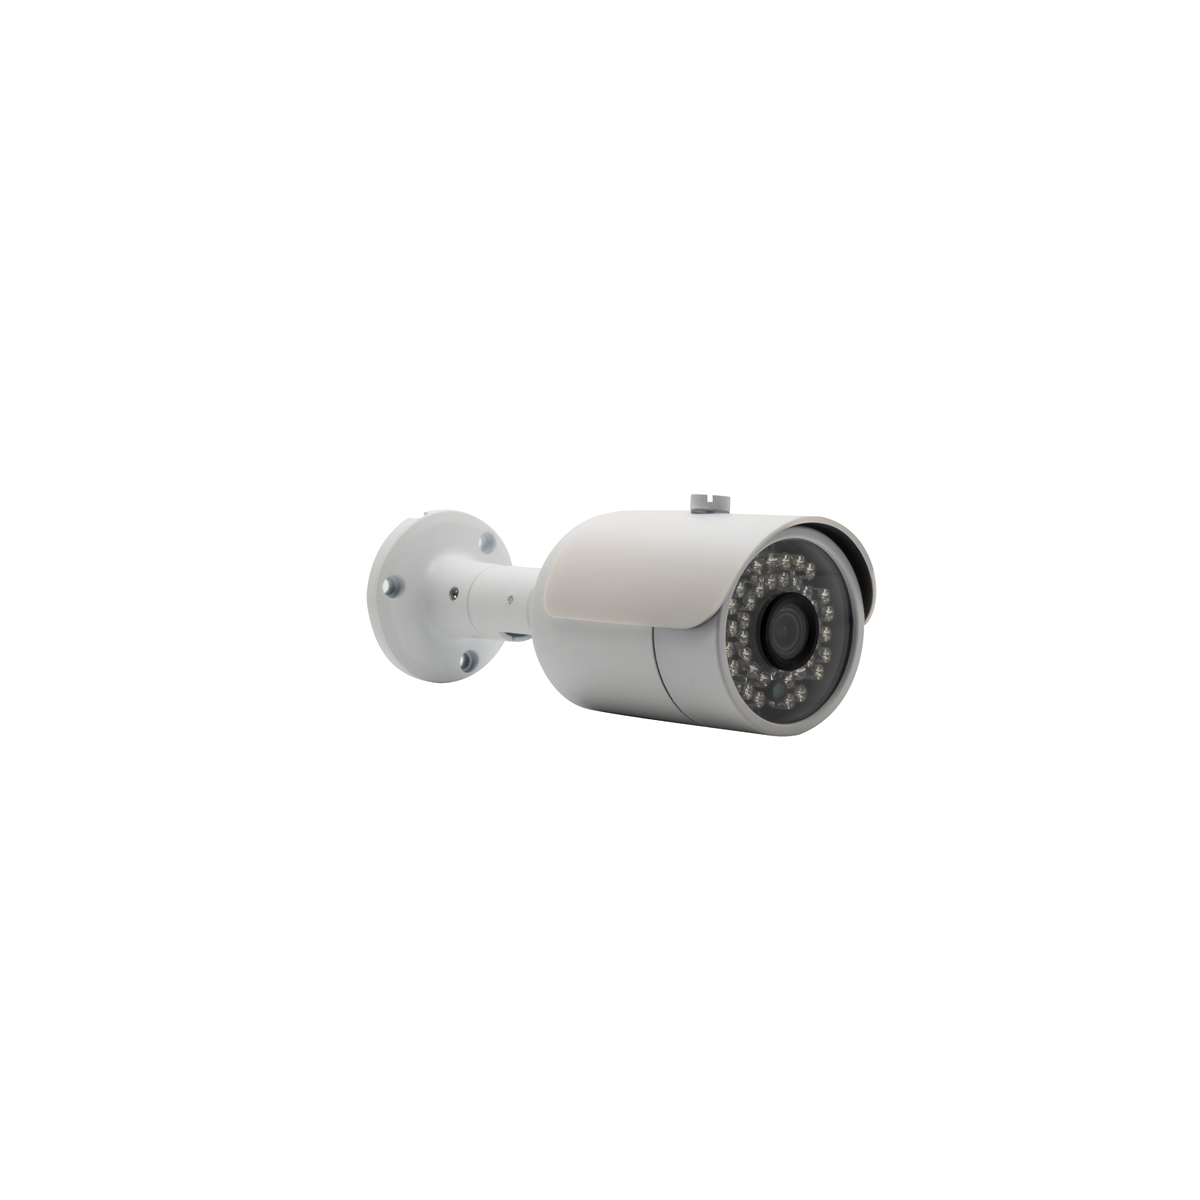 HBF 60XX-M2 2MP 3.6MM 36 SMART IR LED AHD METAL KASA GECE GÖRÜŞLÜ KAMERA